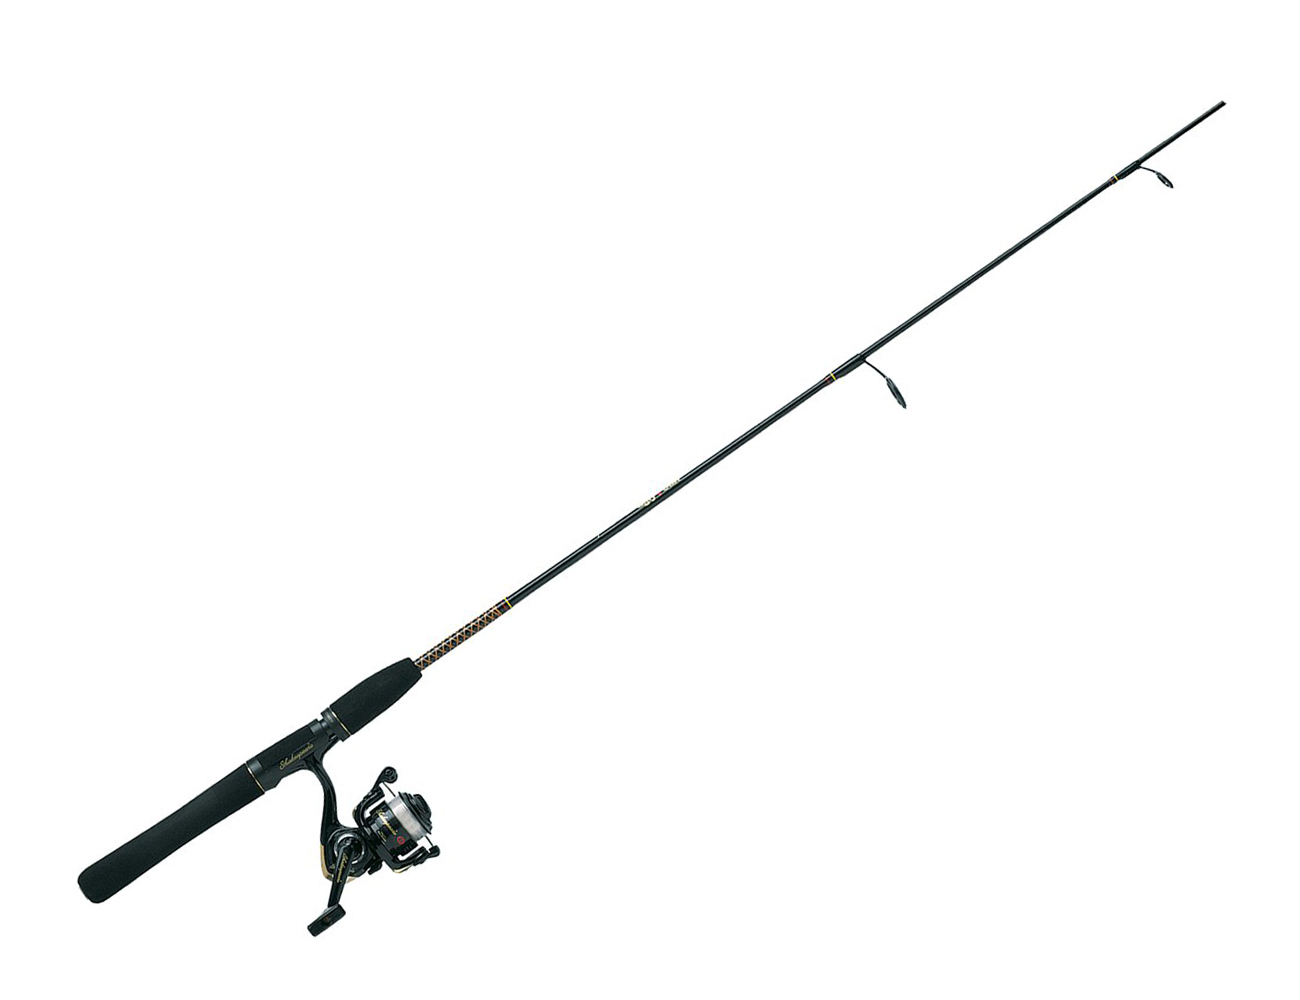 fishing rod - photo #46